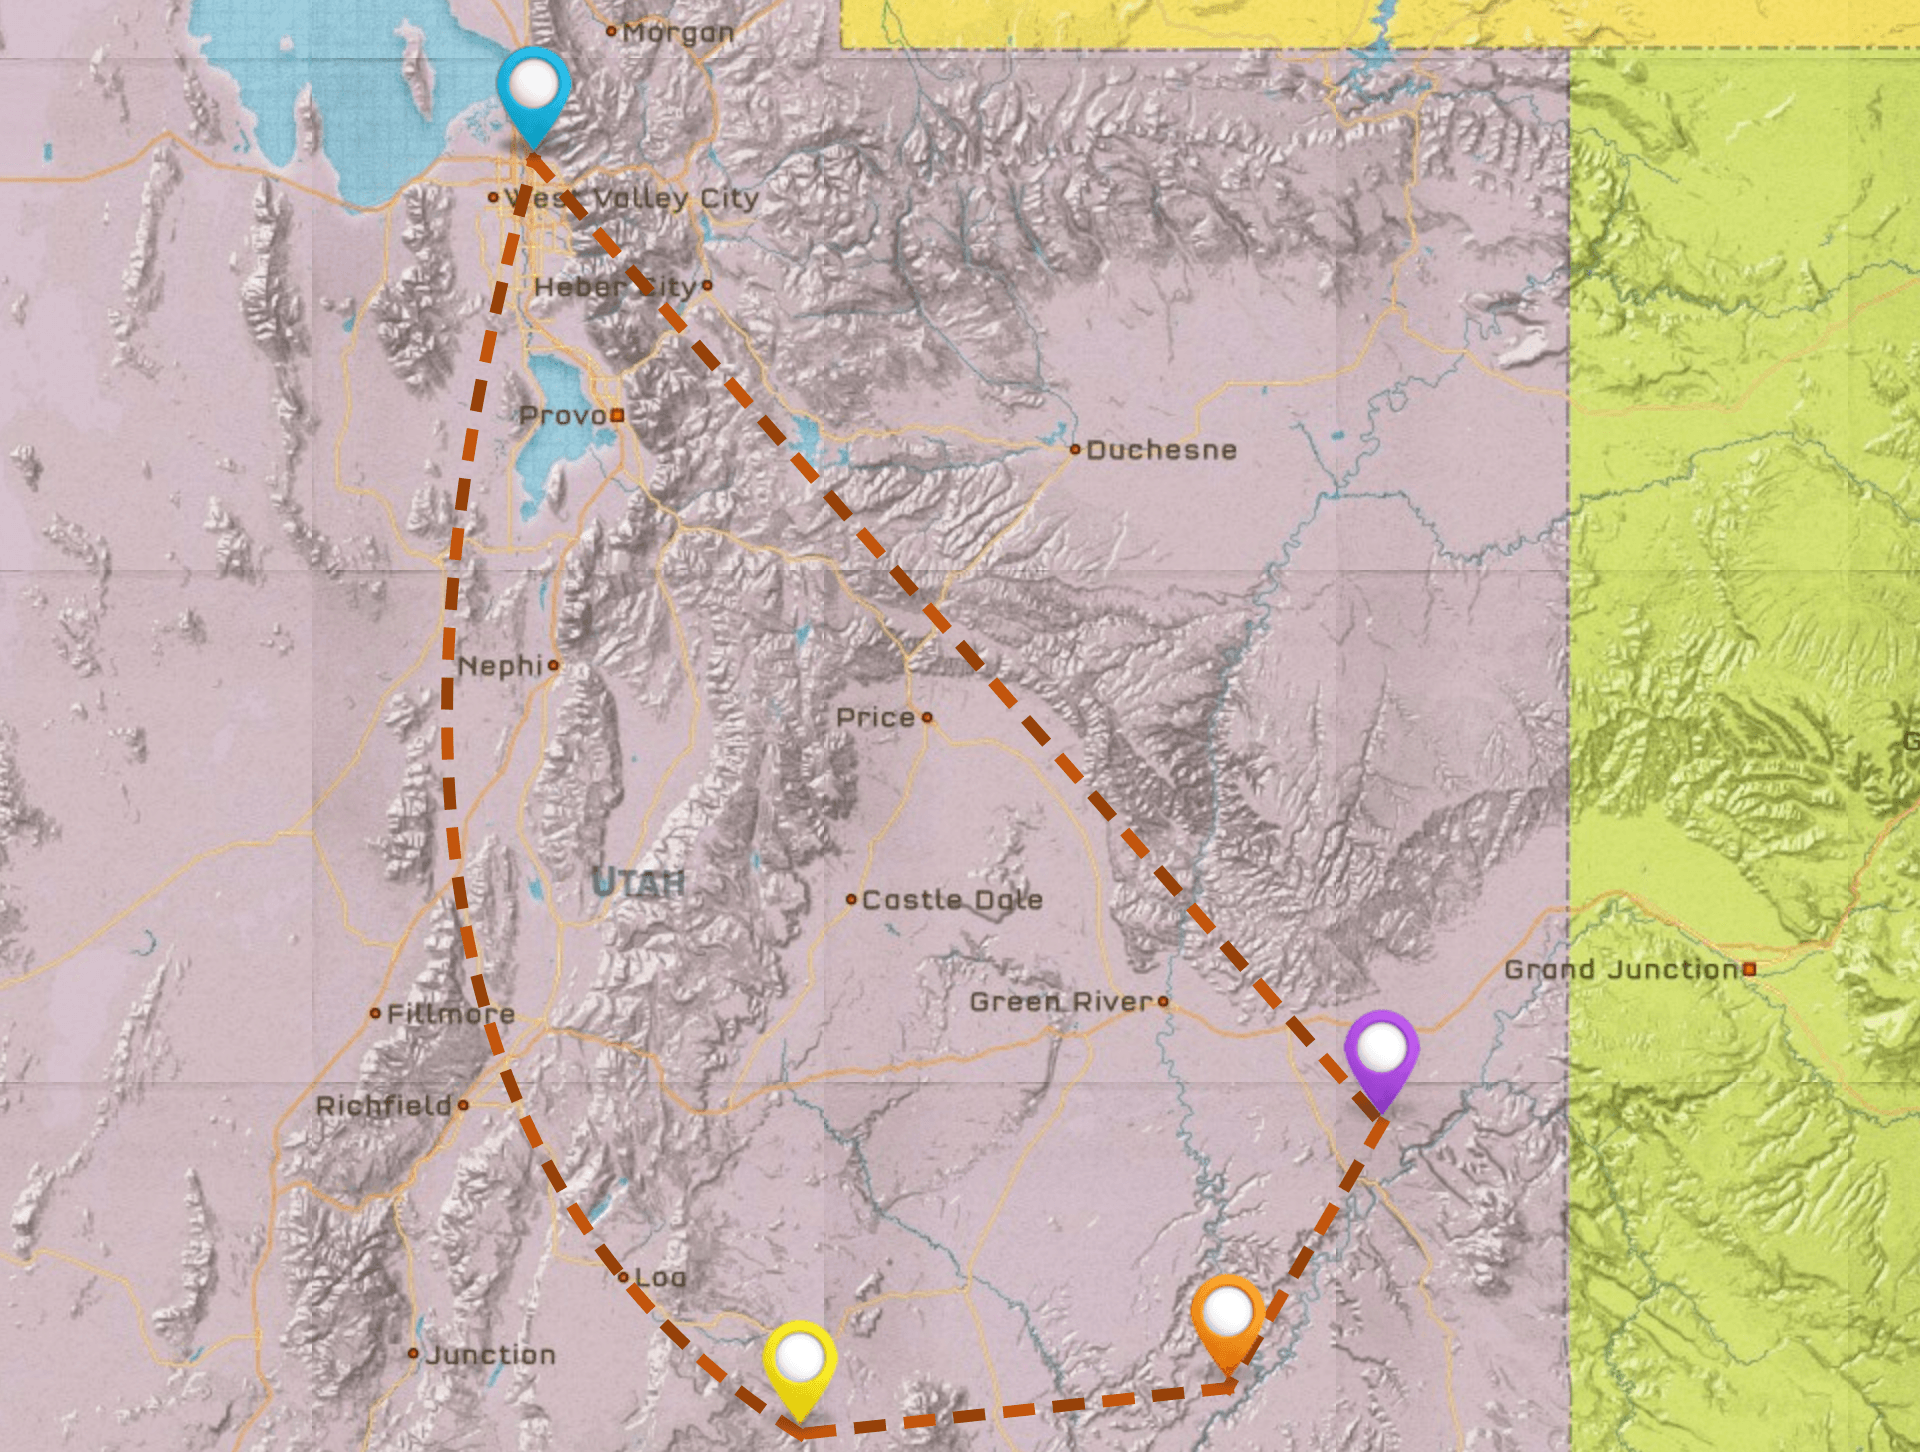 Utah National Park Itinerary